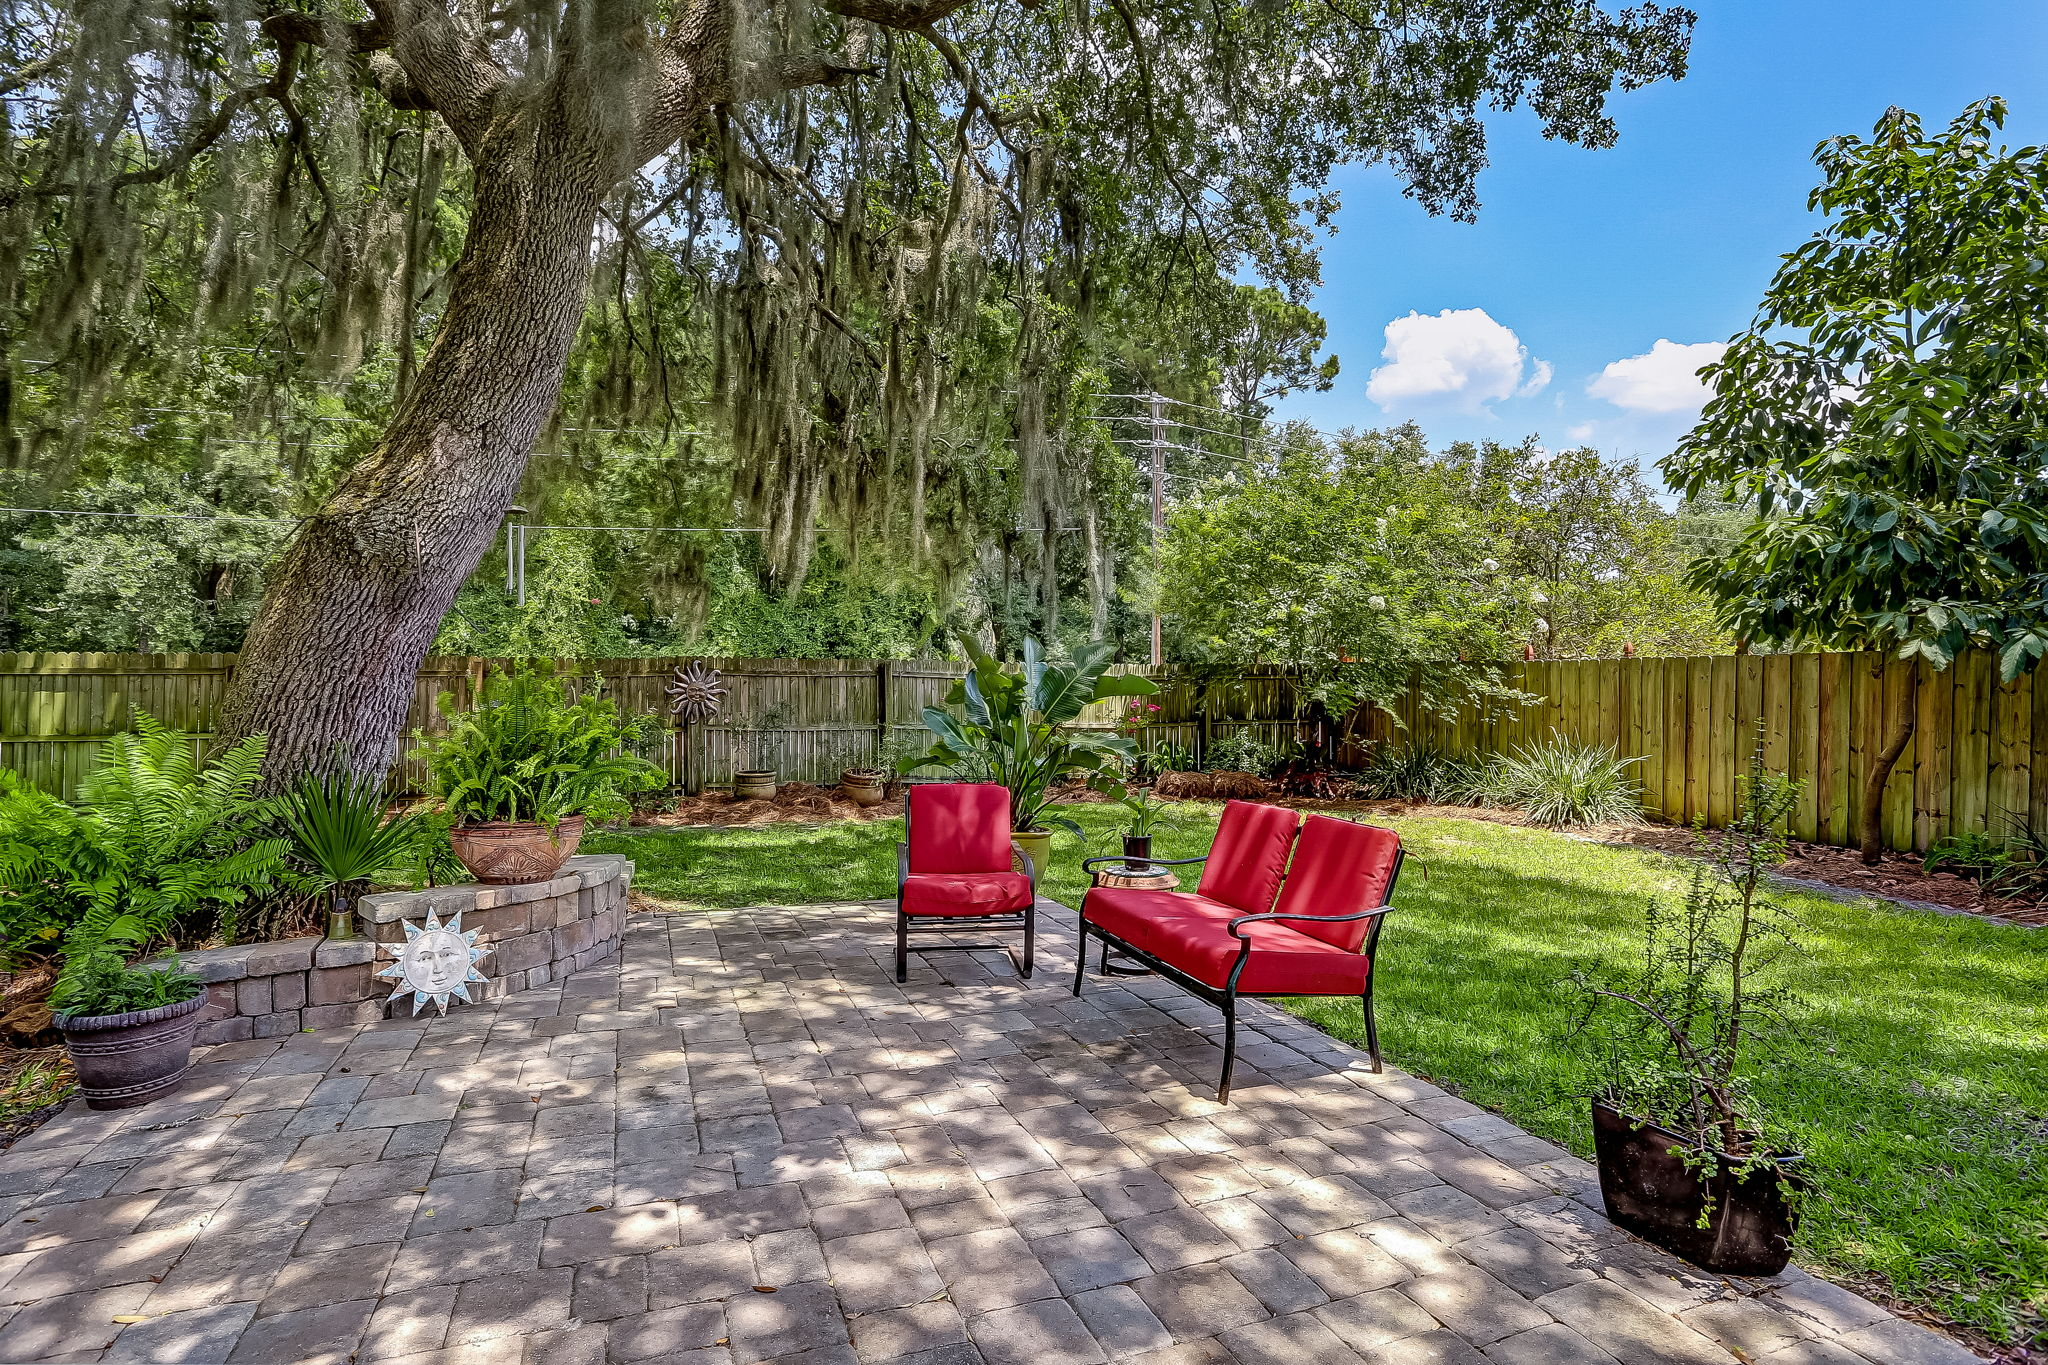 Backyard fenced for privacy and furry friends